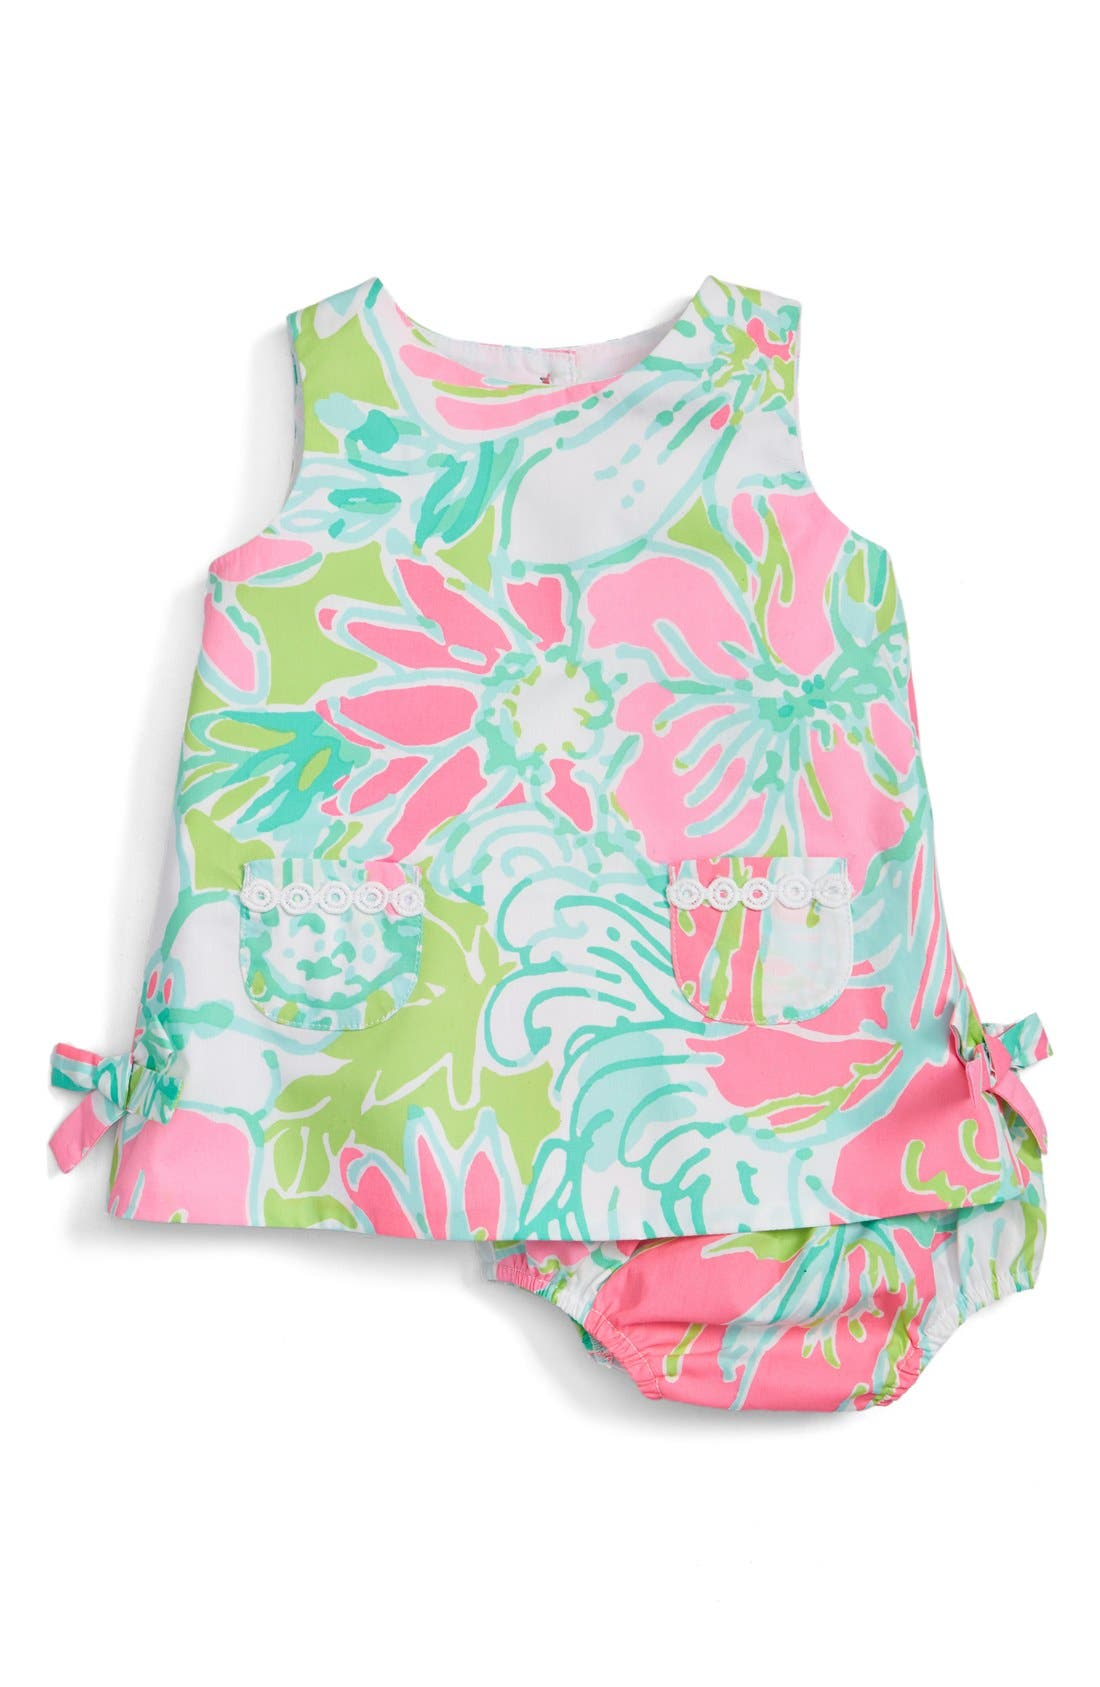 Lilly Pulitzer Baby Lilly Shift Dress Baby Girls